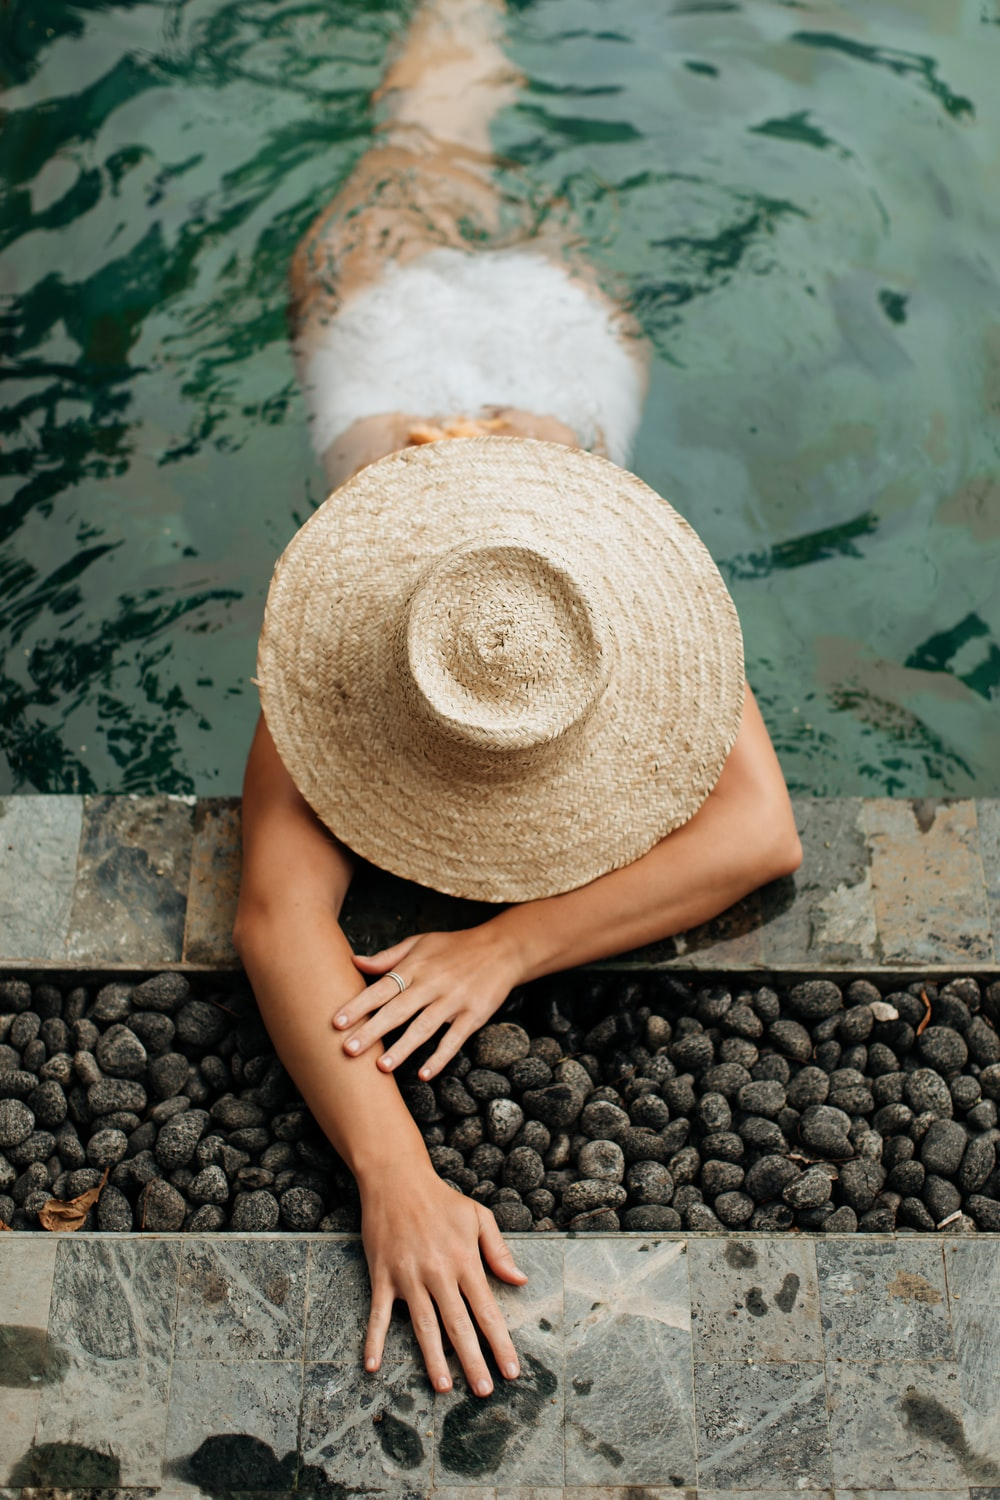 person wearing brown straw hat sitting on black stones near body of water during daytime